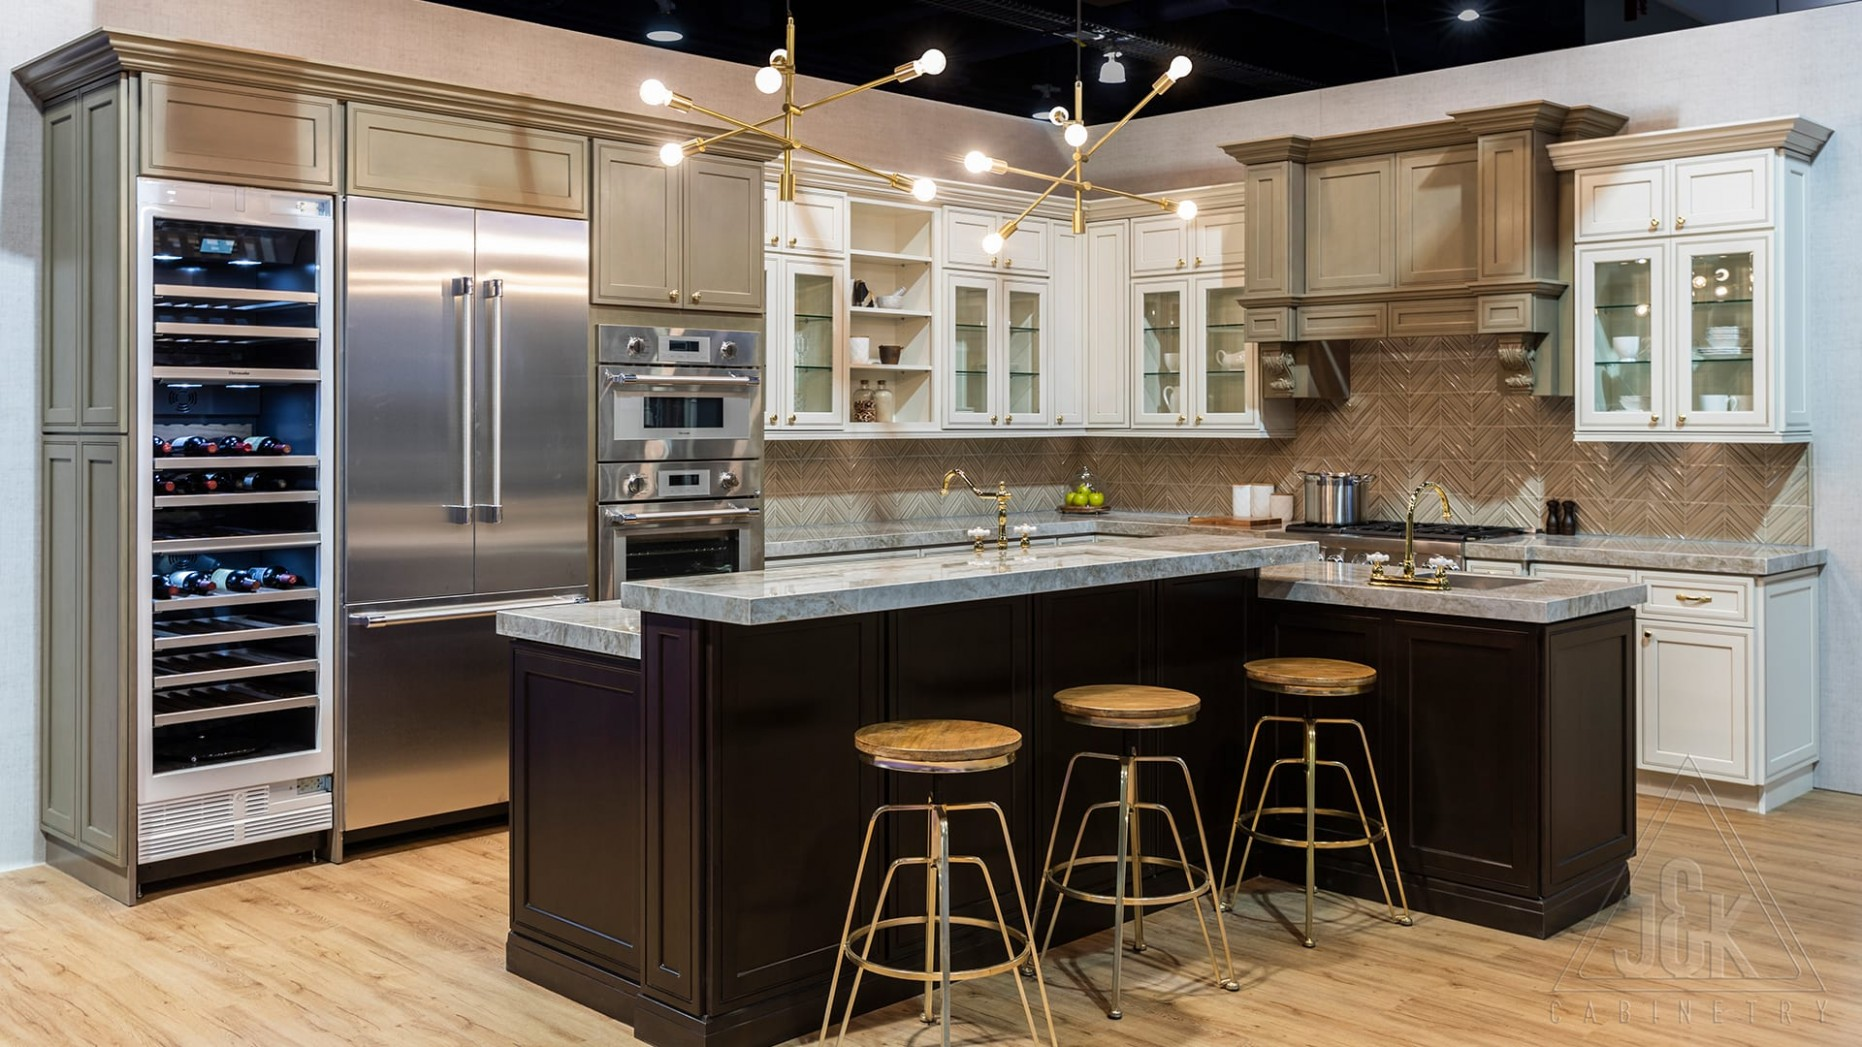 J&K Cabinetry  All-Wood Cabinets - Long Island Kitchen Cabinets Wholesale